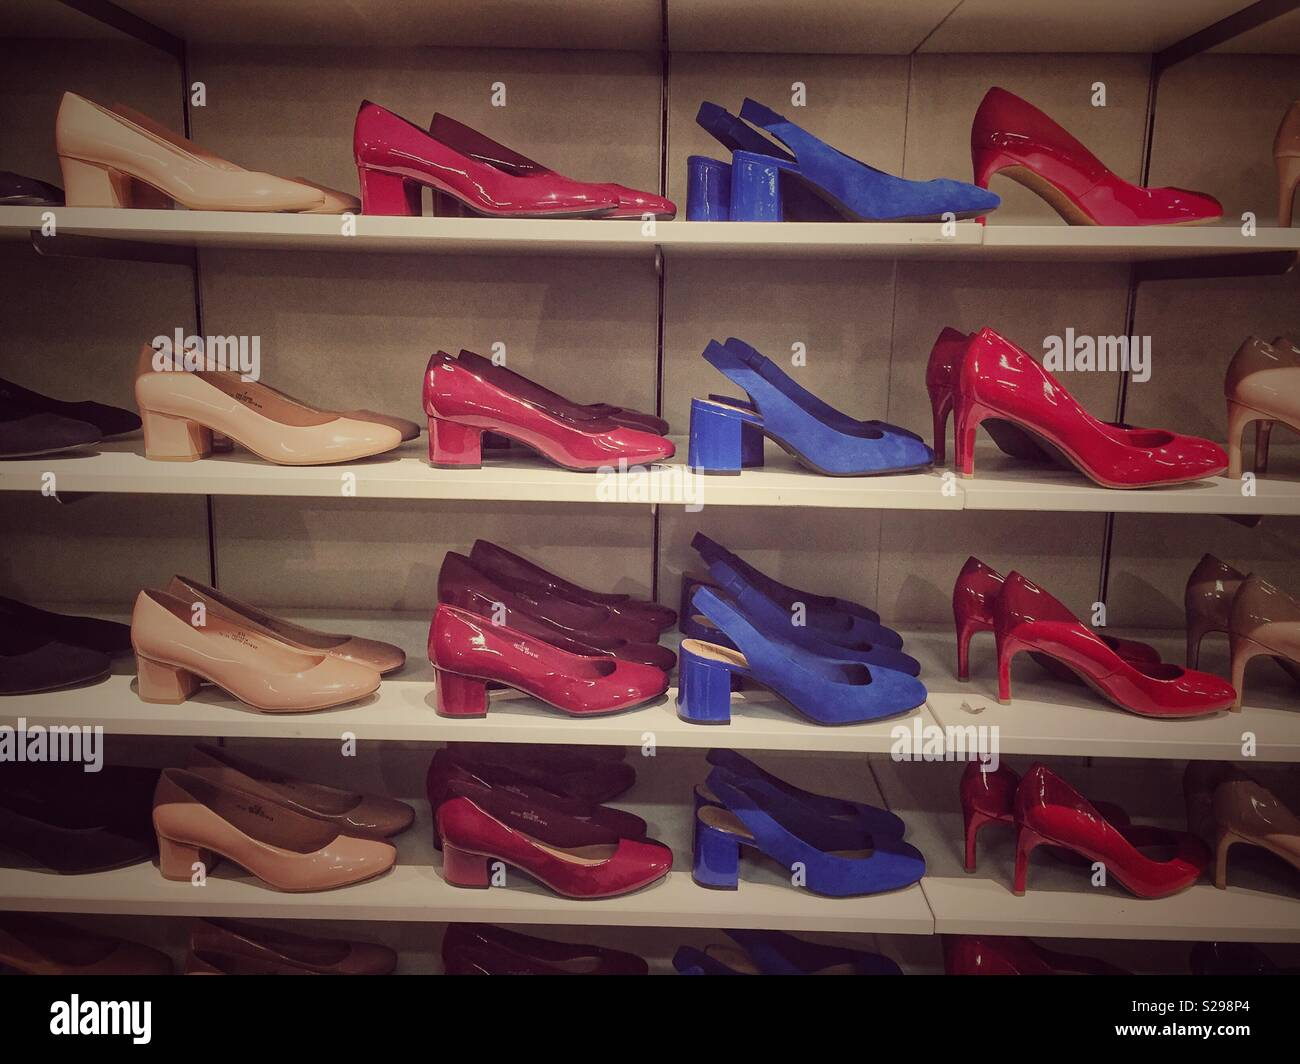 A display of shoes lined up in rows on shelves in a shop. - Stock Image